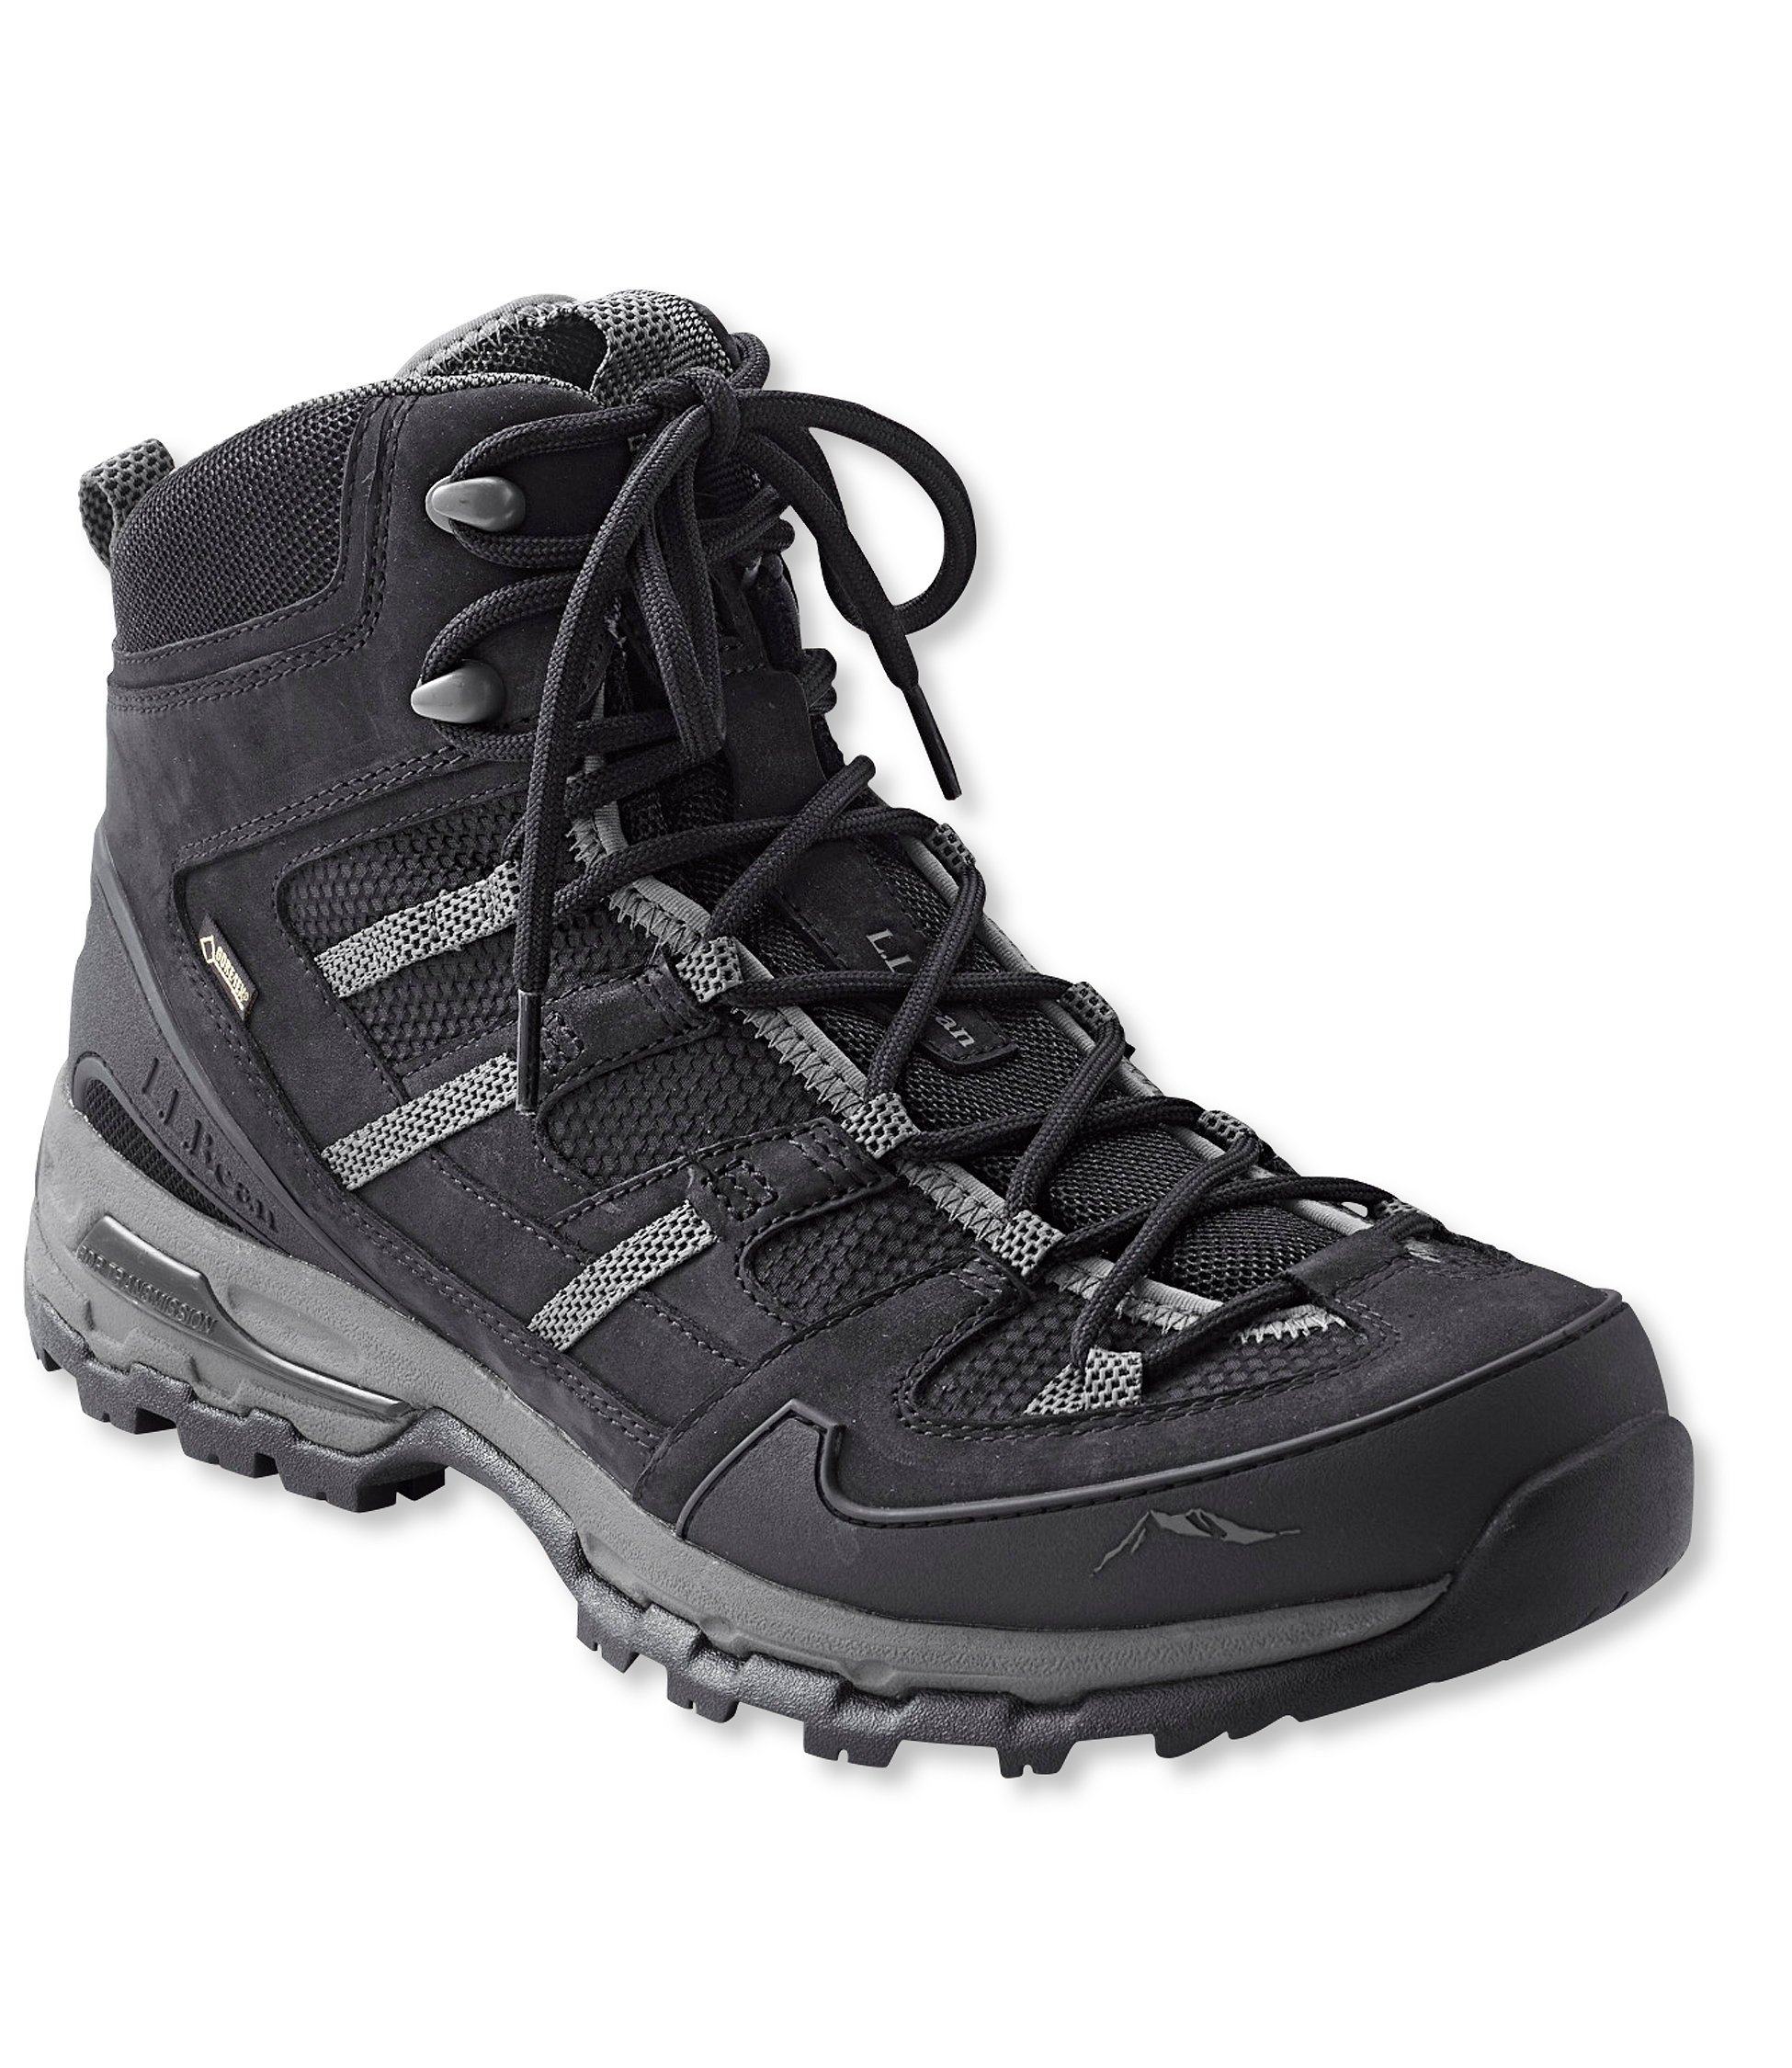 L.L.Bean Gore-Tex Ascender Hiking Shoes